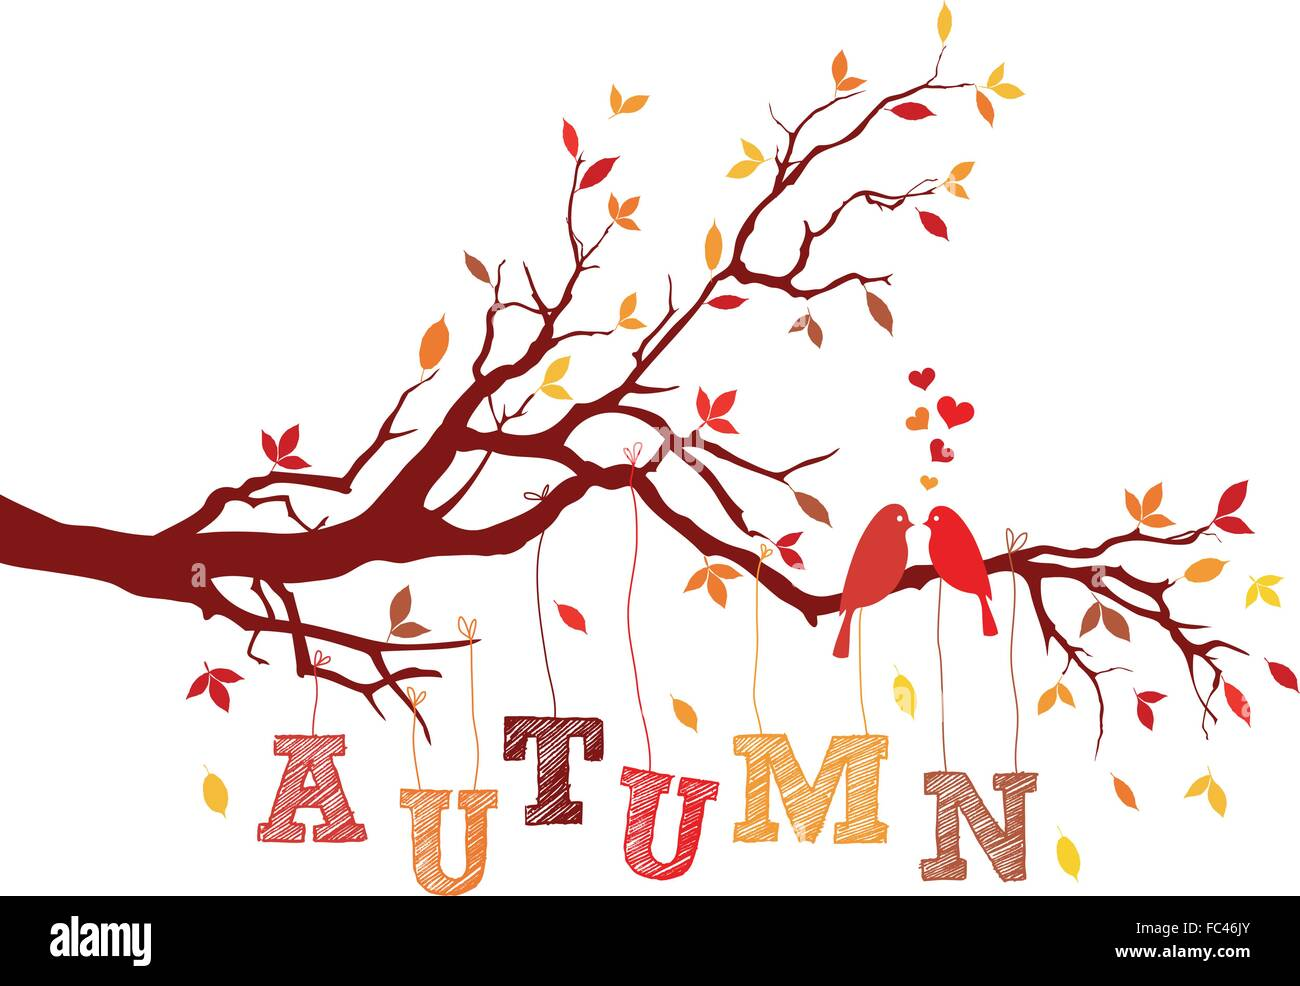 birds on autumn tree branch with falling leaves, vector illustration - Stock Image